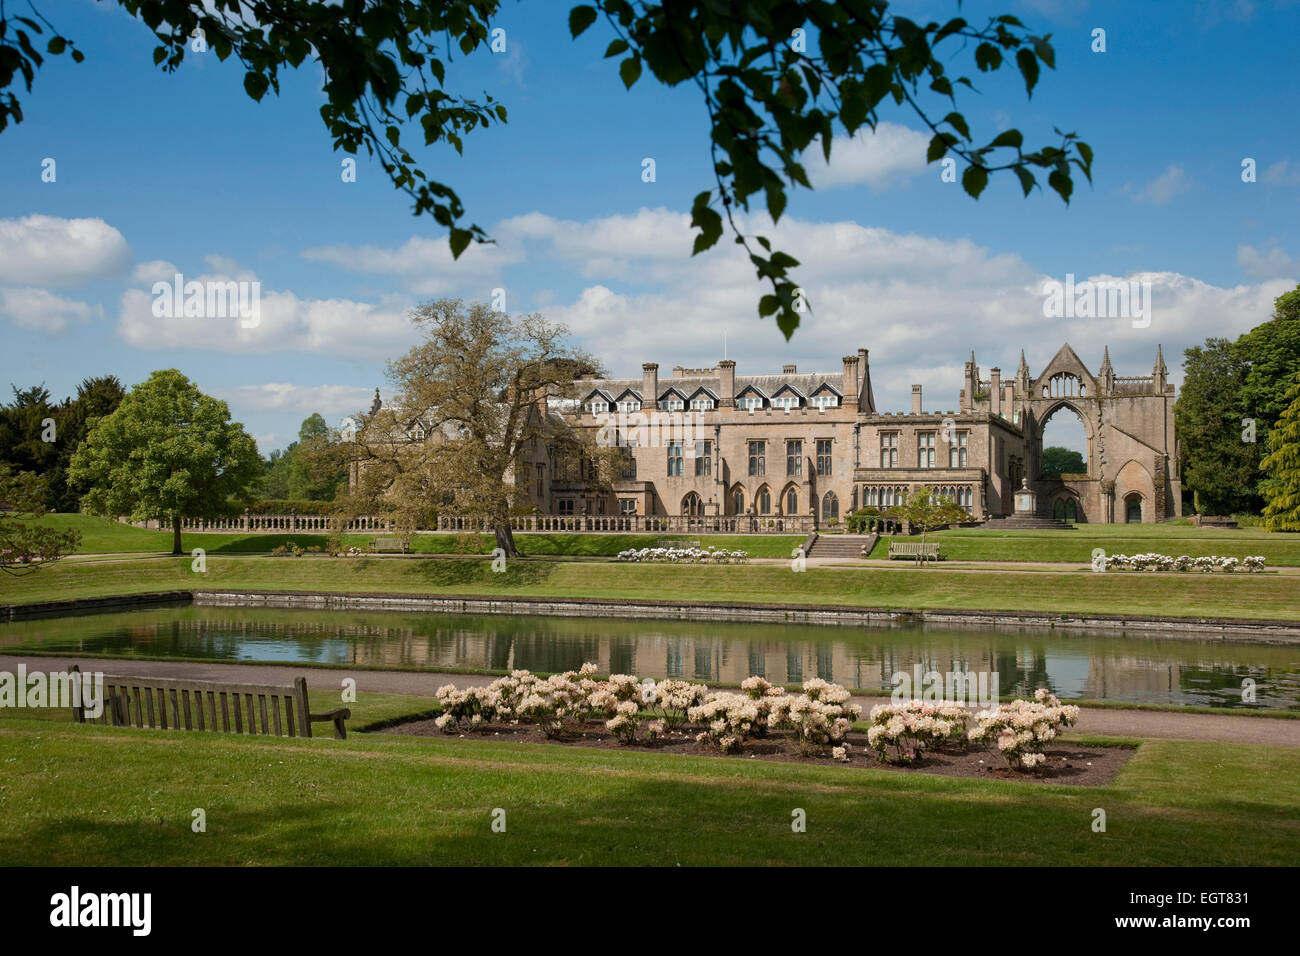 Newstead Abbey Grounds Stockfotos & Newstead Abbey Grounds Bilder ...